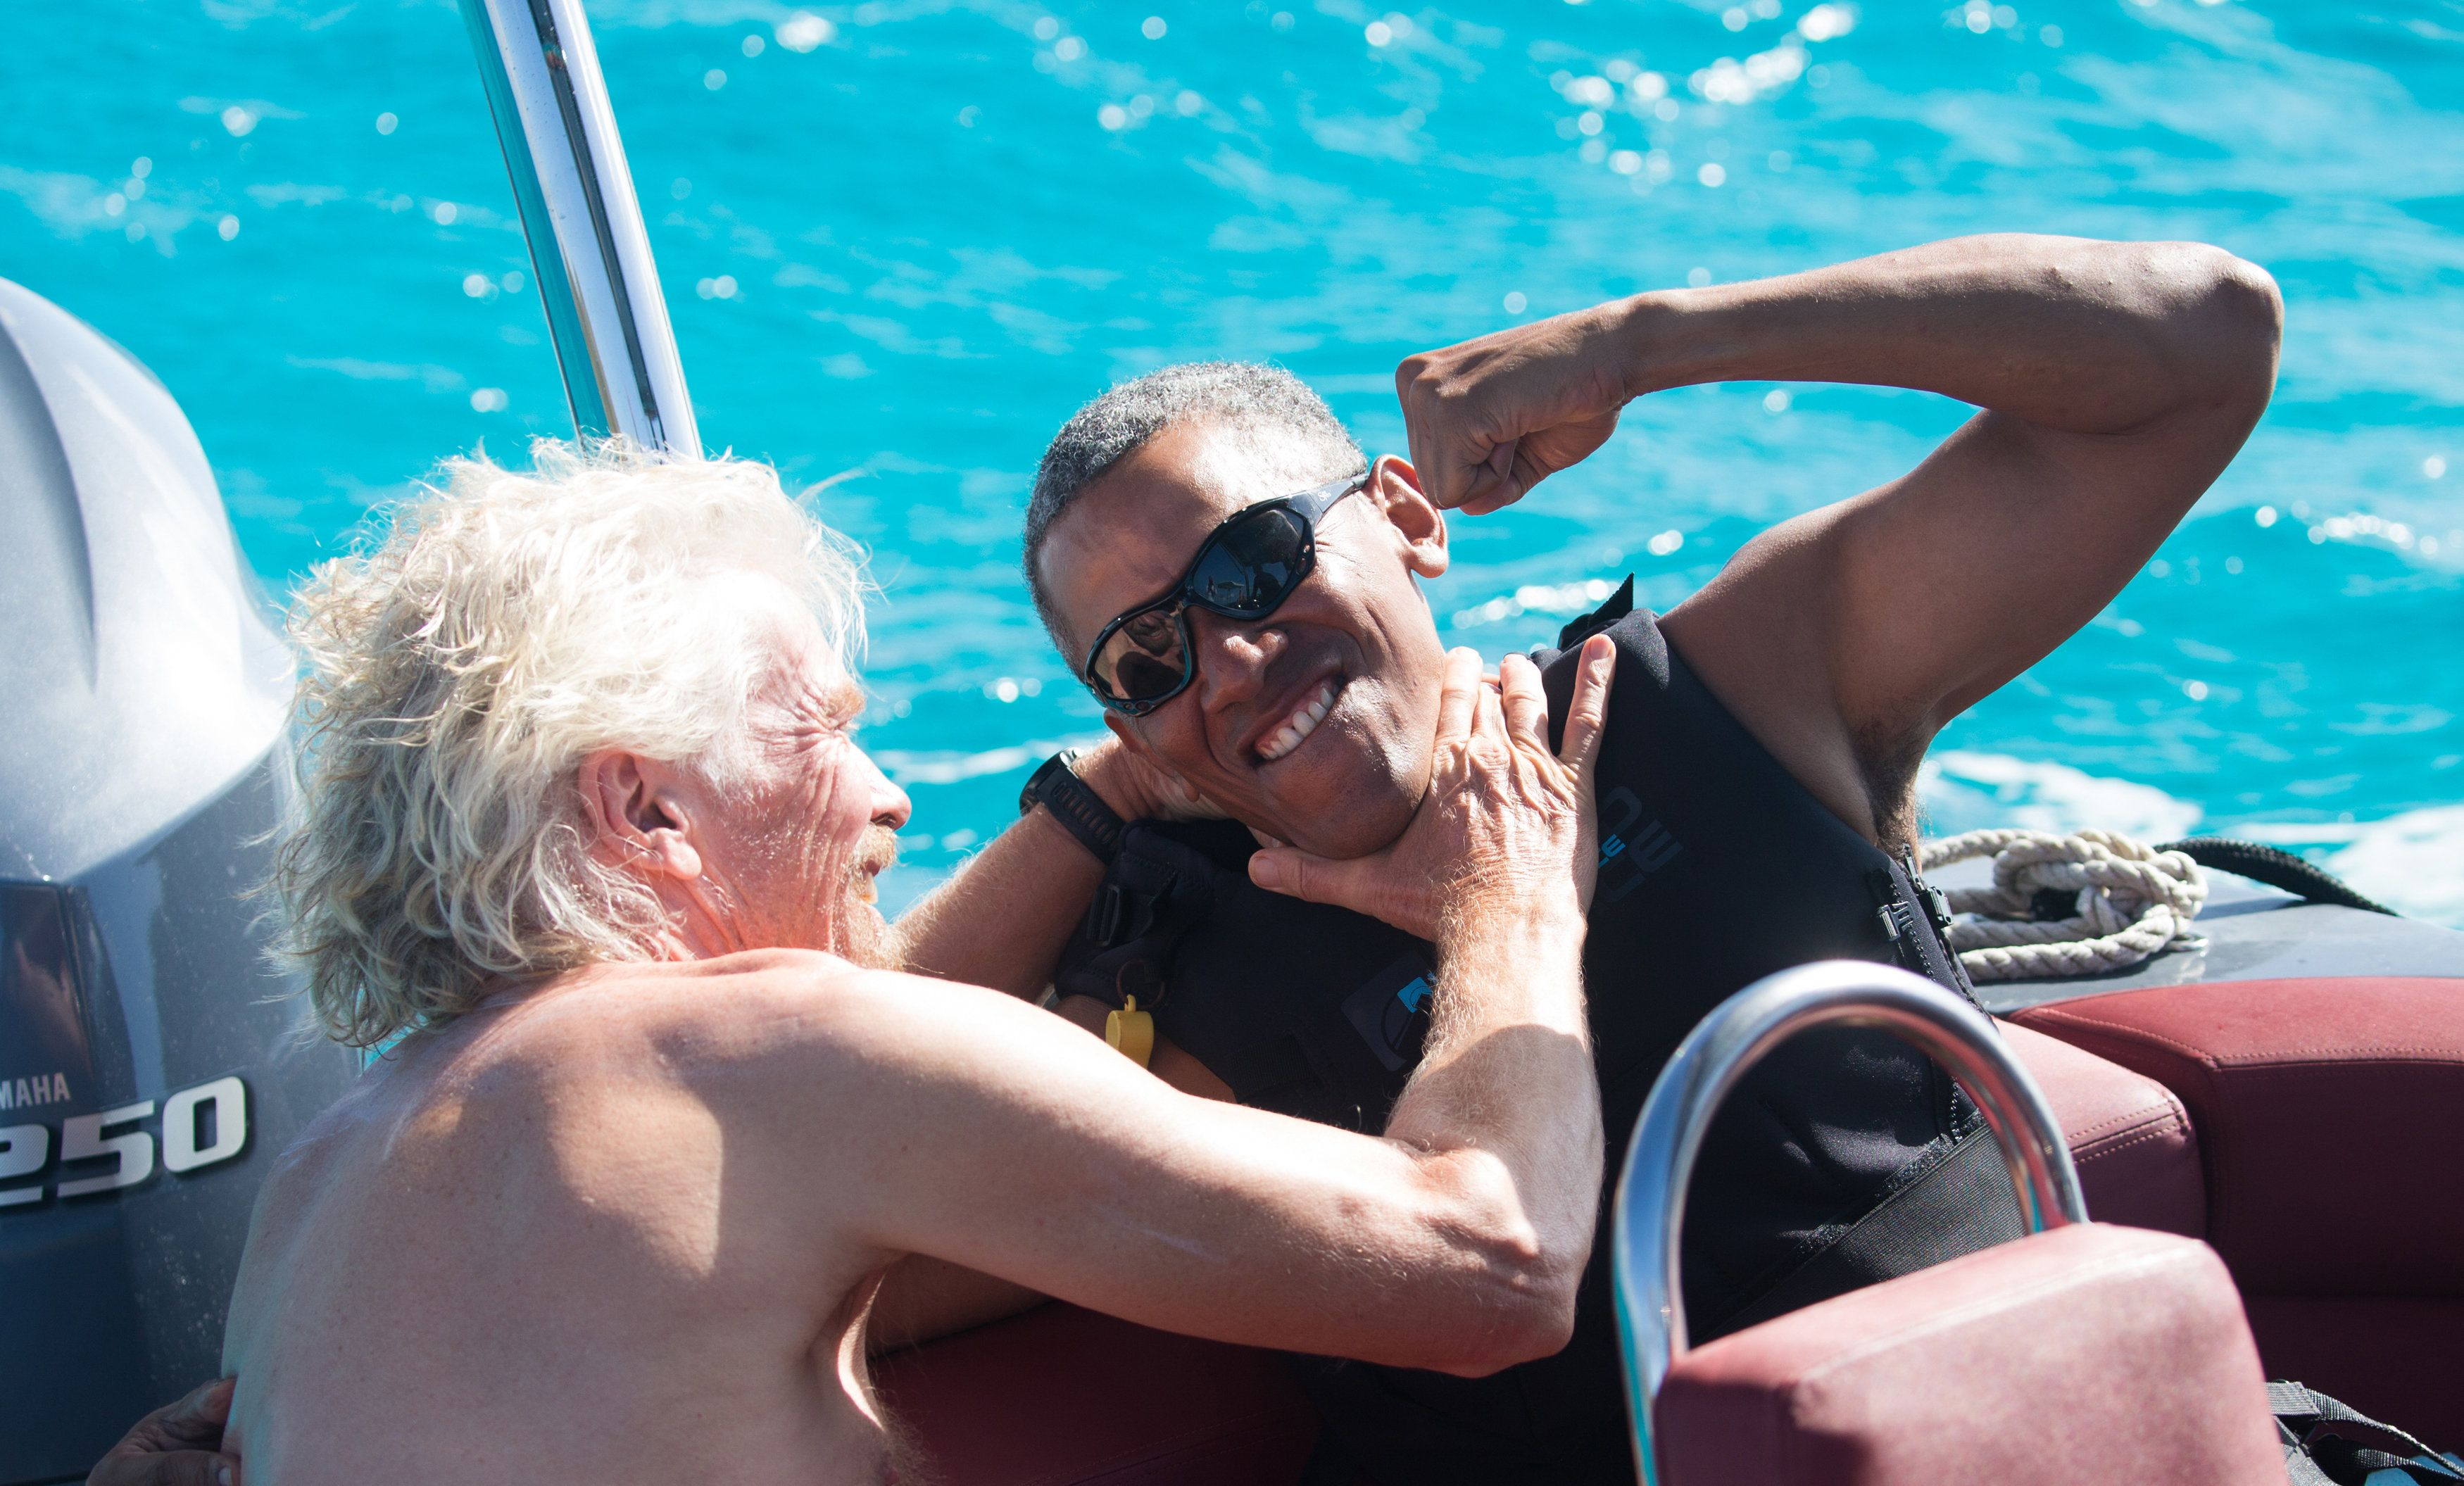 THIS IMAGE IS BINNED  Former U.S. President Barack Obama and British businessman Richard Branson sit on a boat during Obama's holiday on Branson's Moskito island, in the British Virgin Islands, in a picture handed out by Virgin on February 7, 2017. Jack Brockway/Virgin Handout via REUTERS FOR EDITORIAL USE ONLY